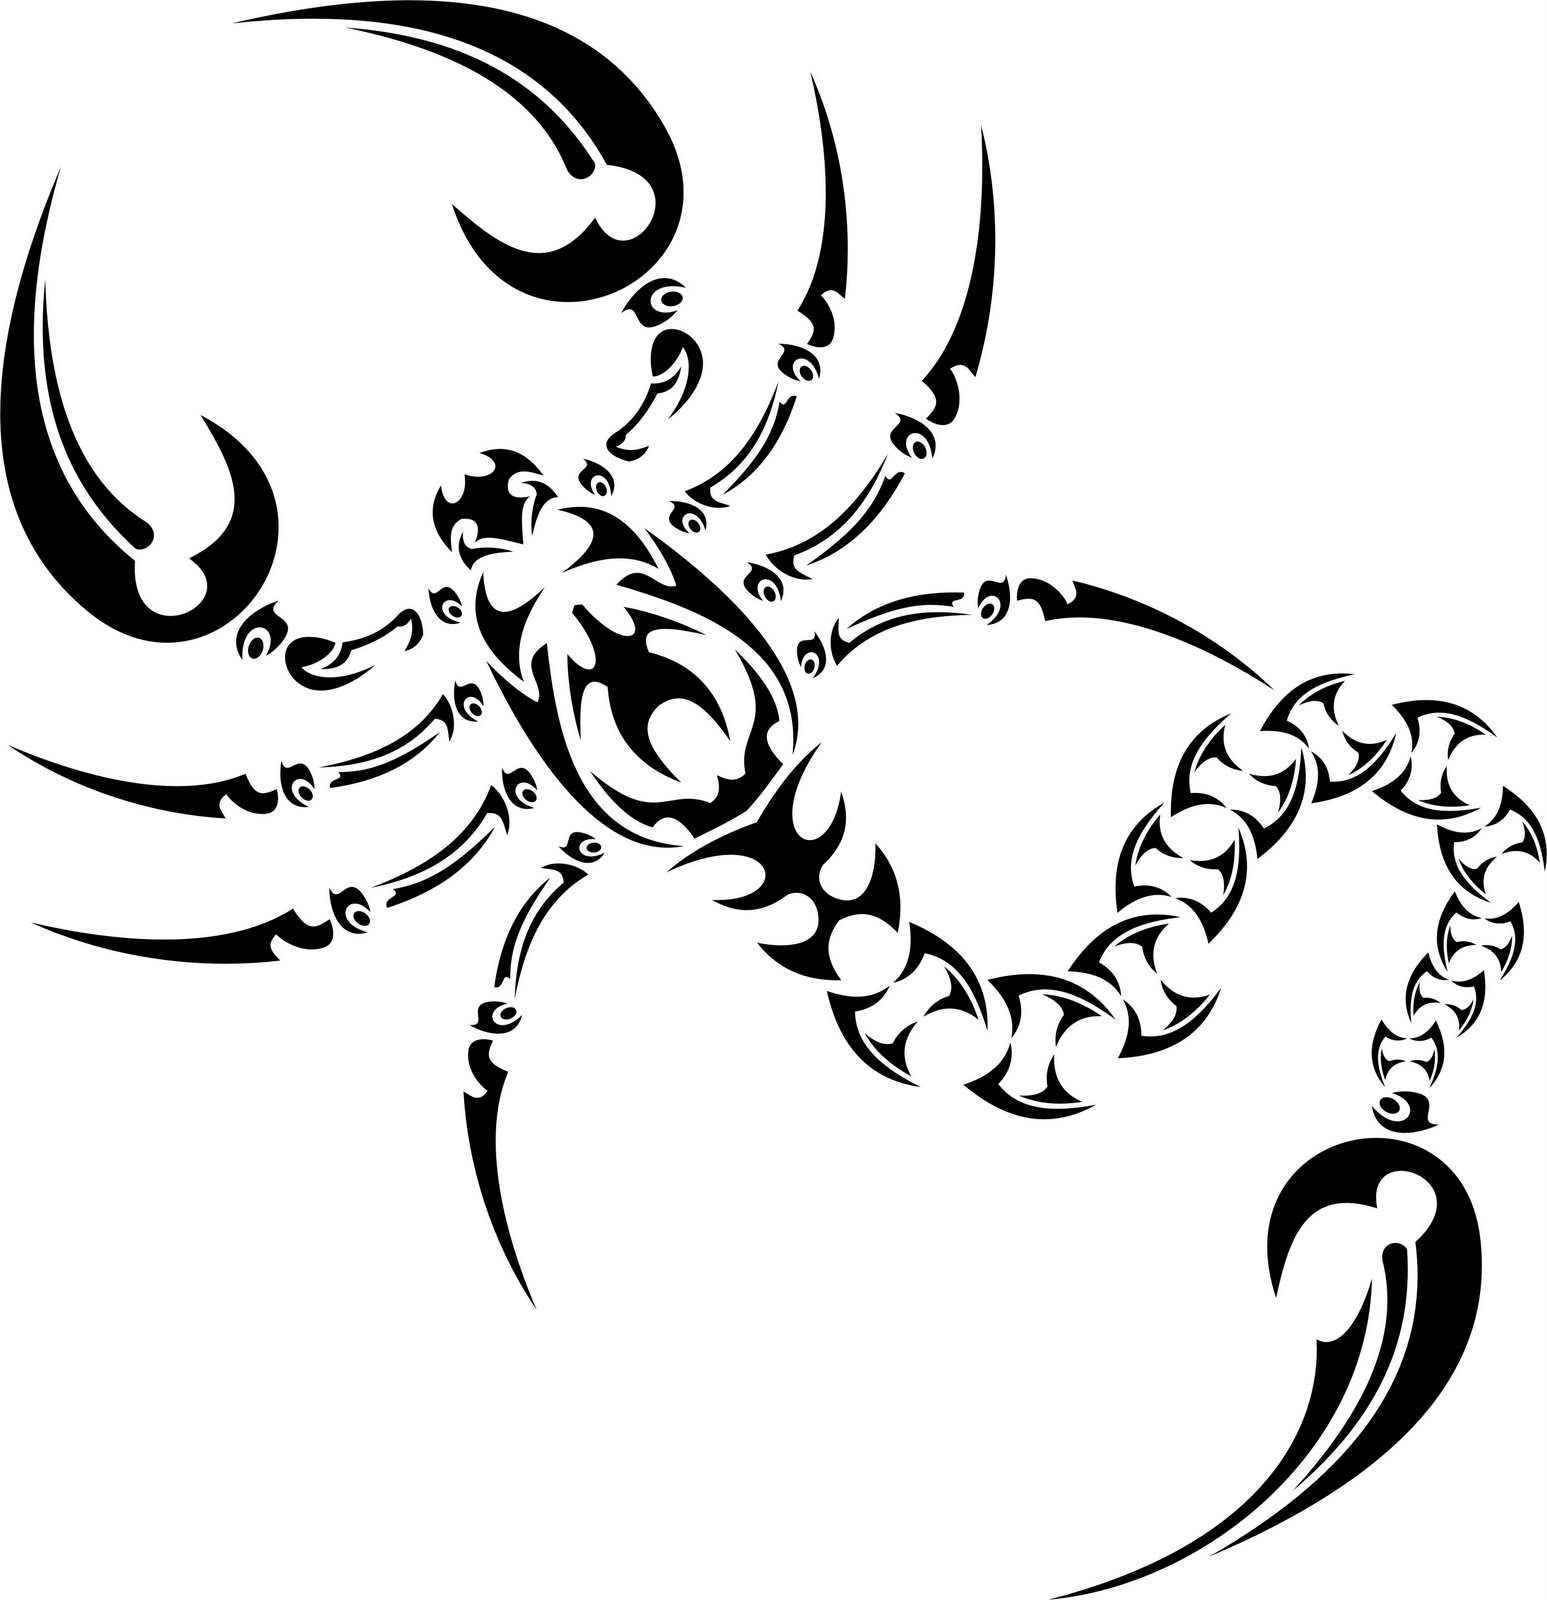 Tribal-Tattoos Scorpion%2BTattoo%2BTribal%2BStyle%2BDesign%2B5